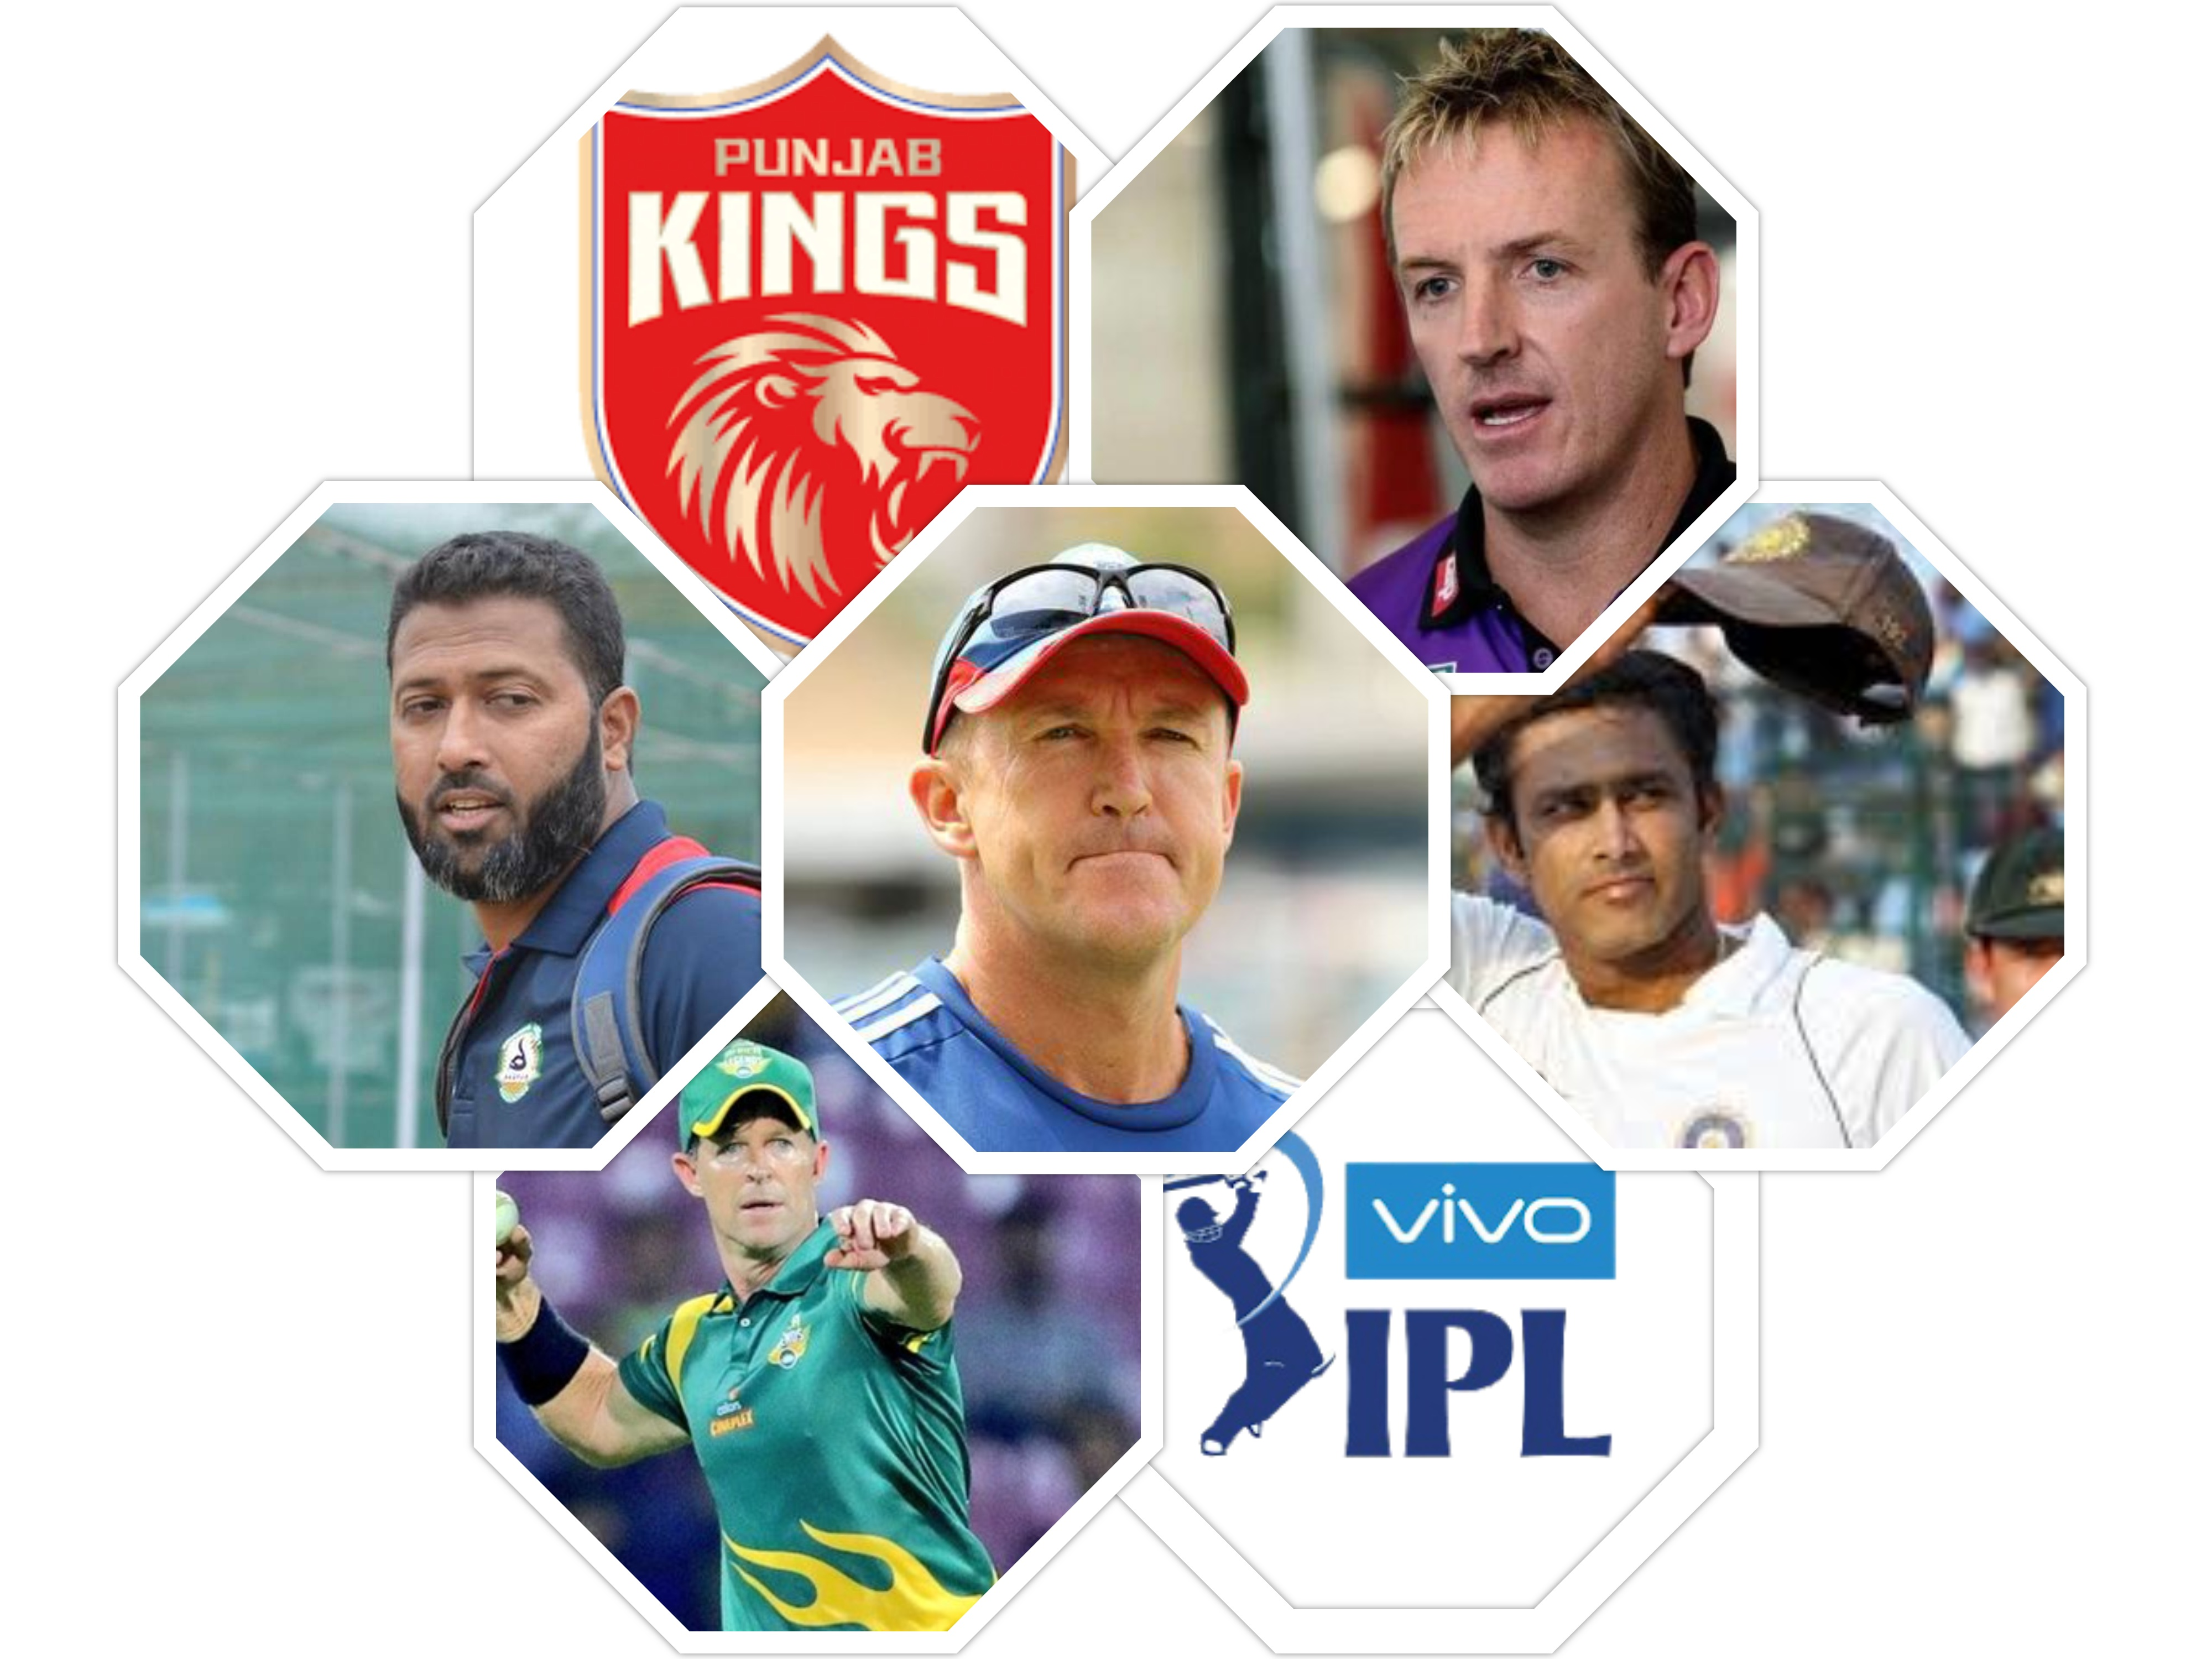 Punjab Kings Coach List & Owners